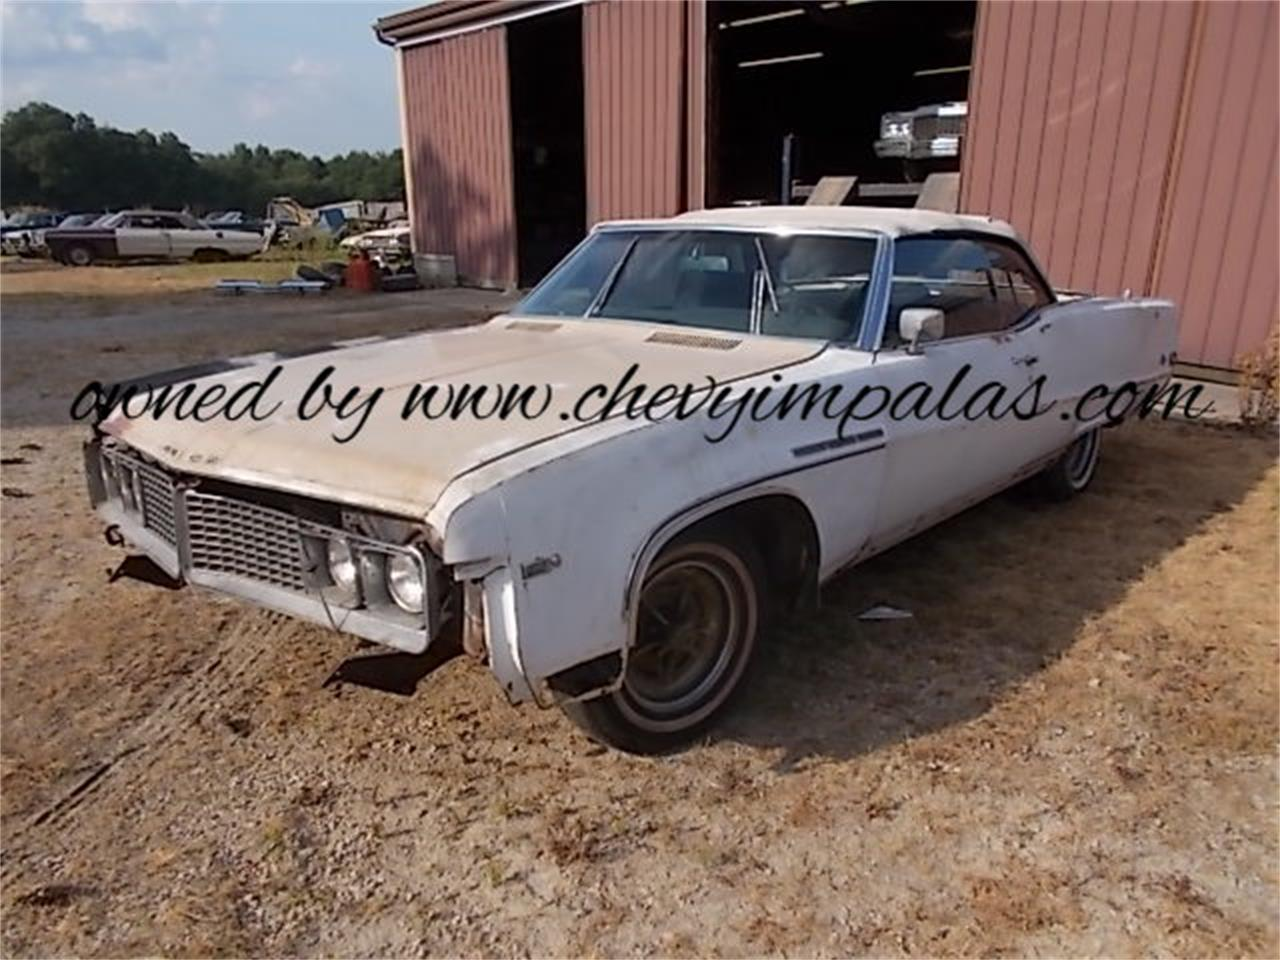 1969 buick electra 225 for sale in creston oh classiccarsbay com classiccarsbay